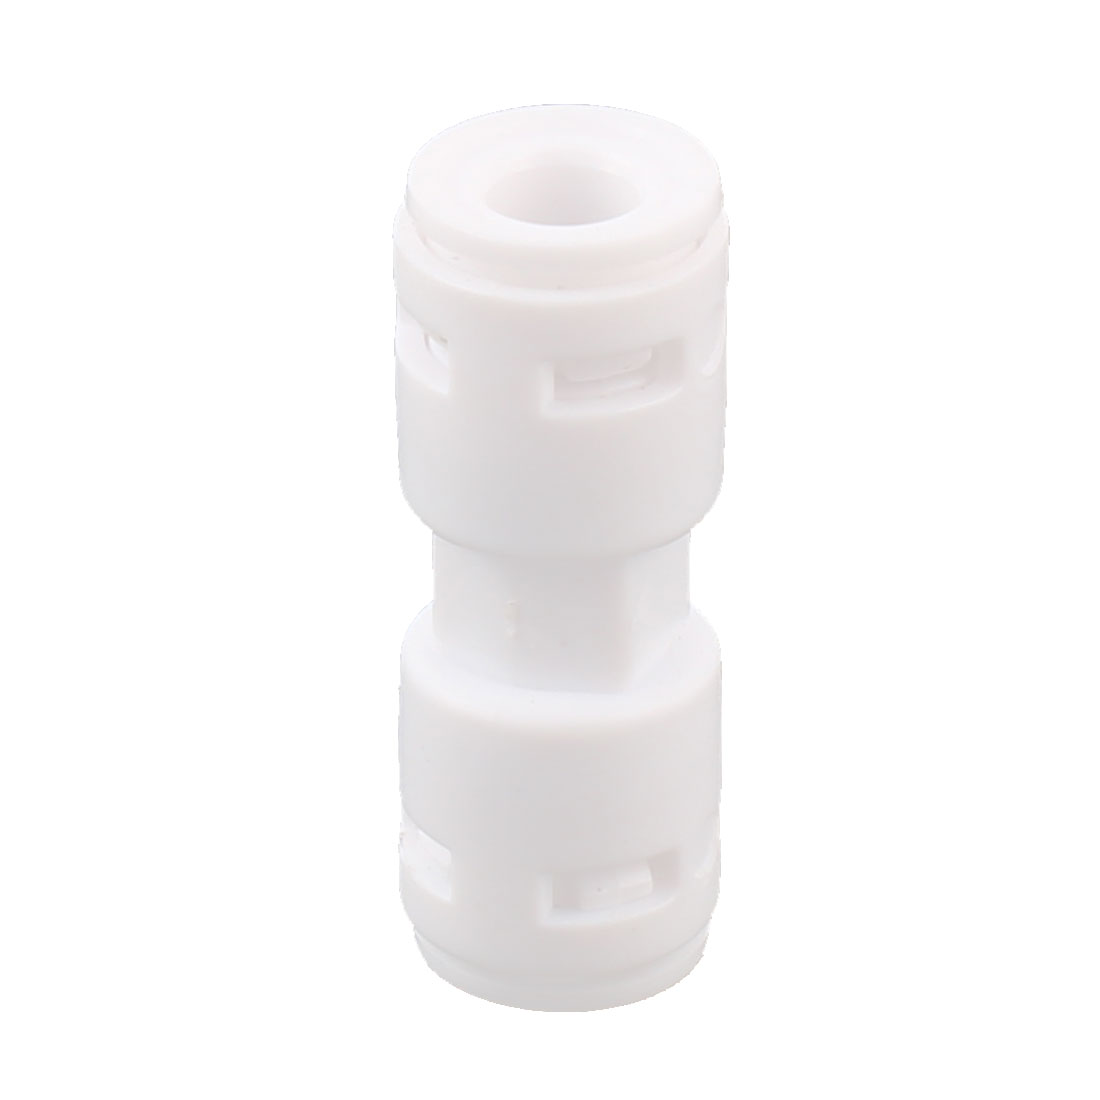 Home Use 6.5mm Inner Dia One Way Water Dispenser Quick Adapter Connector White - image 2 of 2